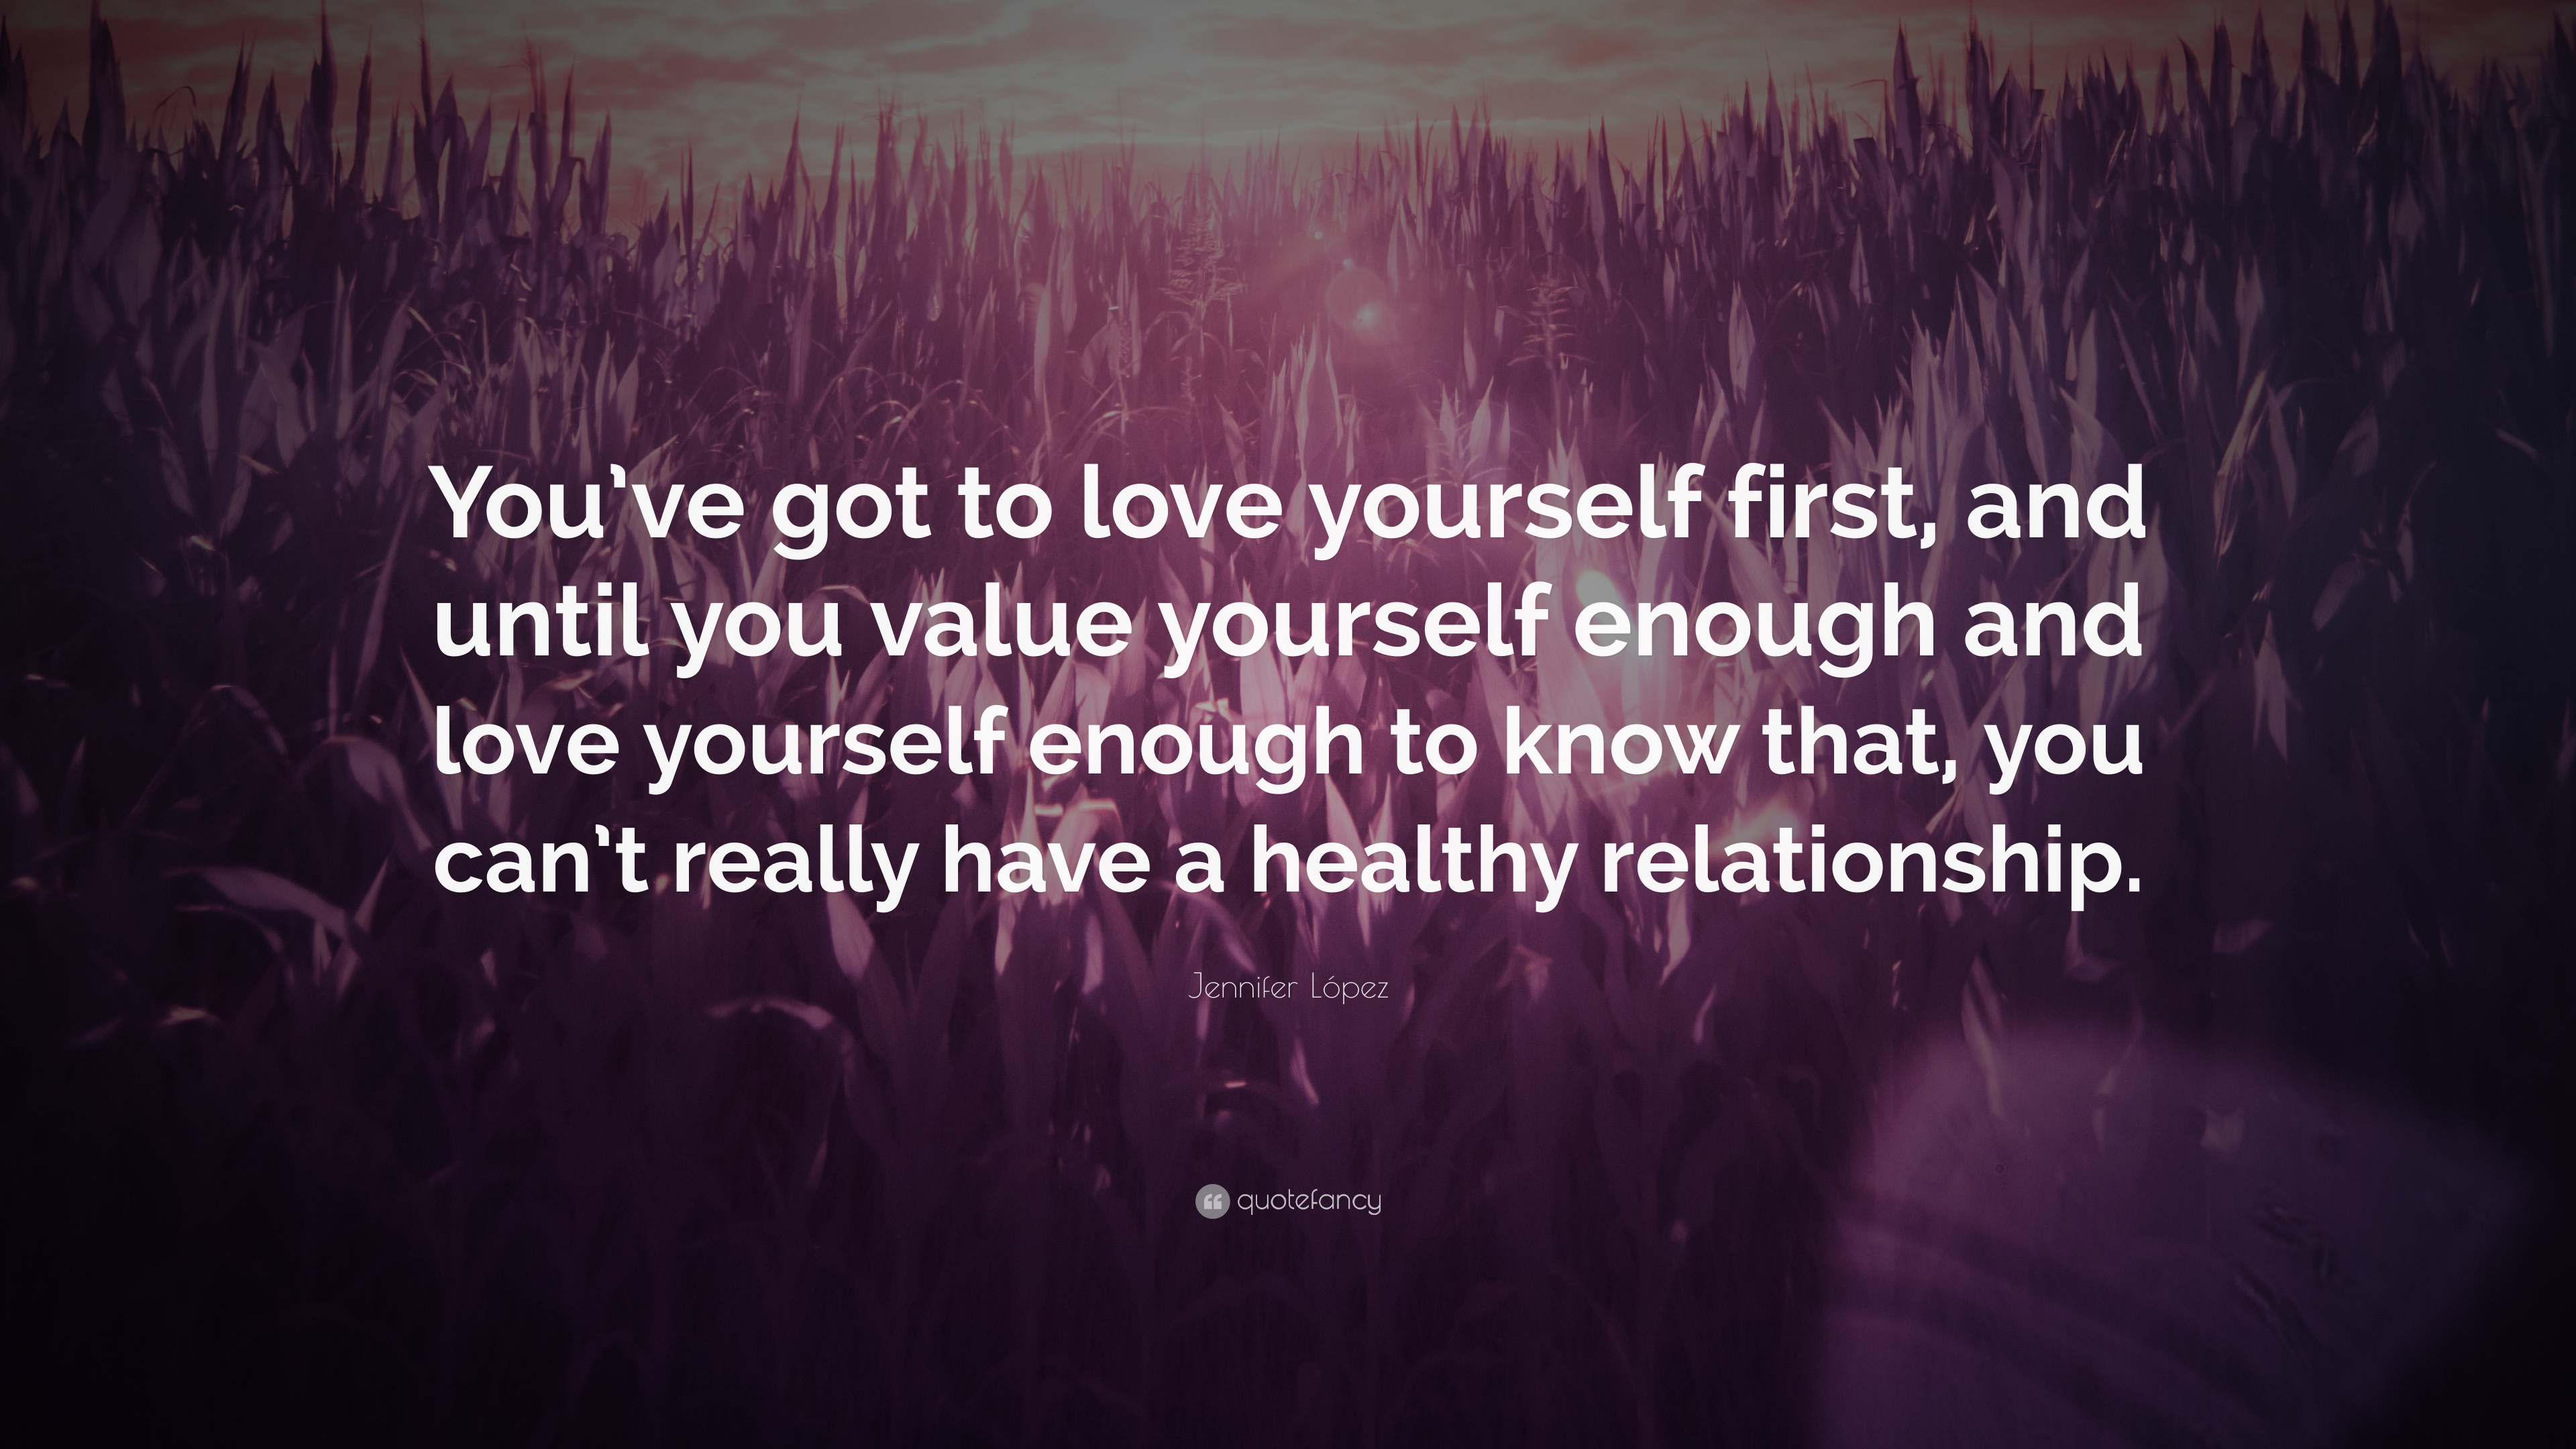 Jennifer Lopez Quote You Ve Got To Love Yourself First And Until